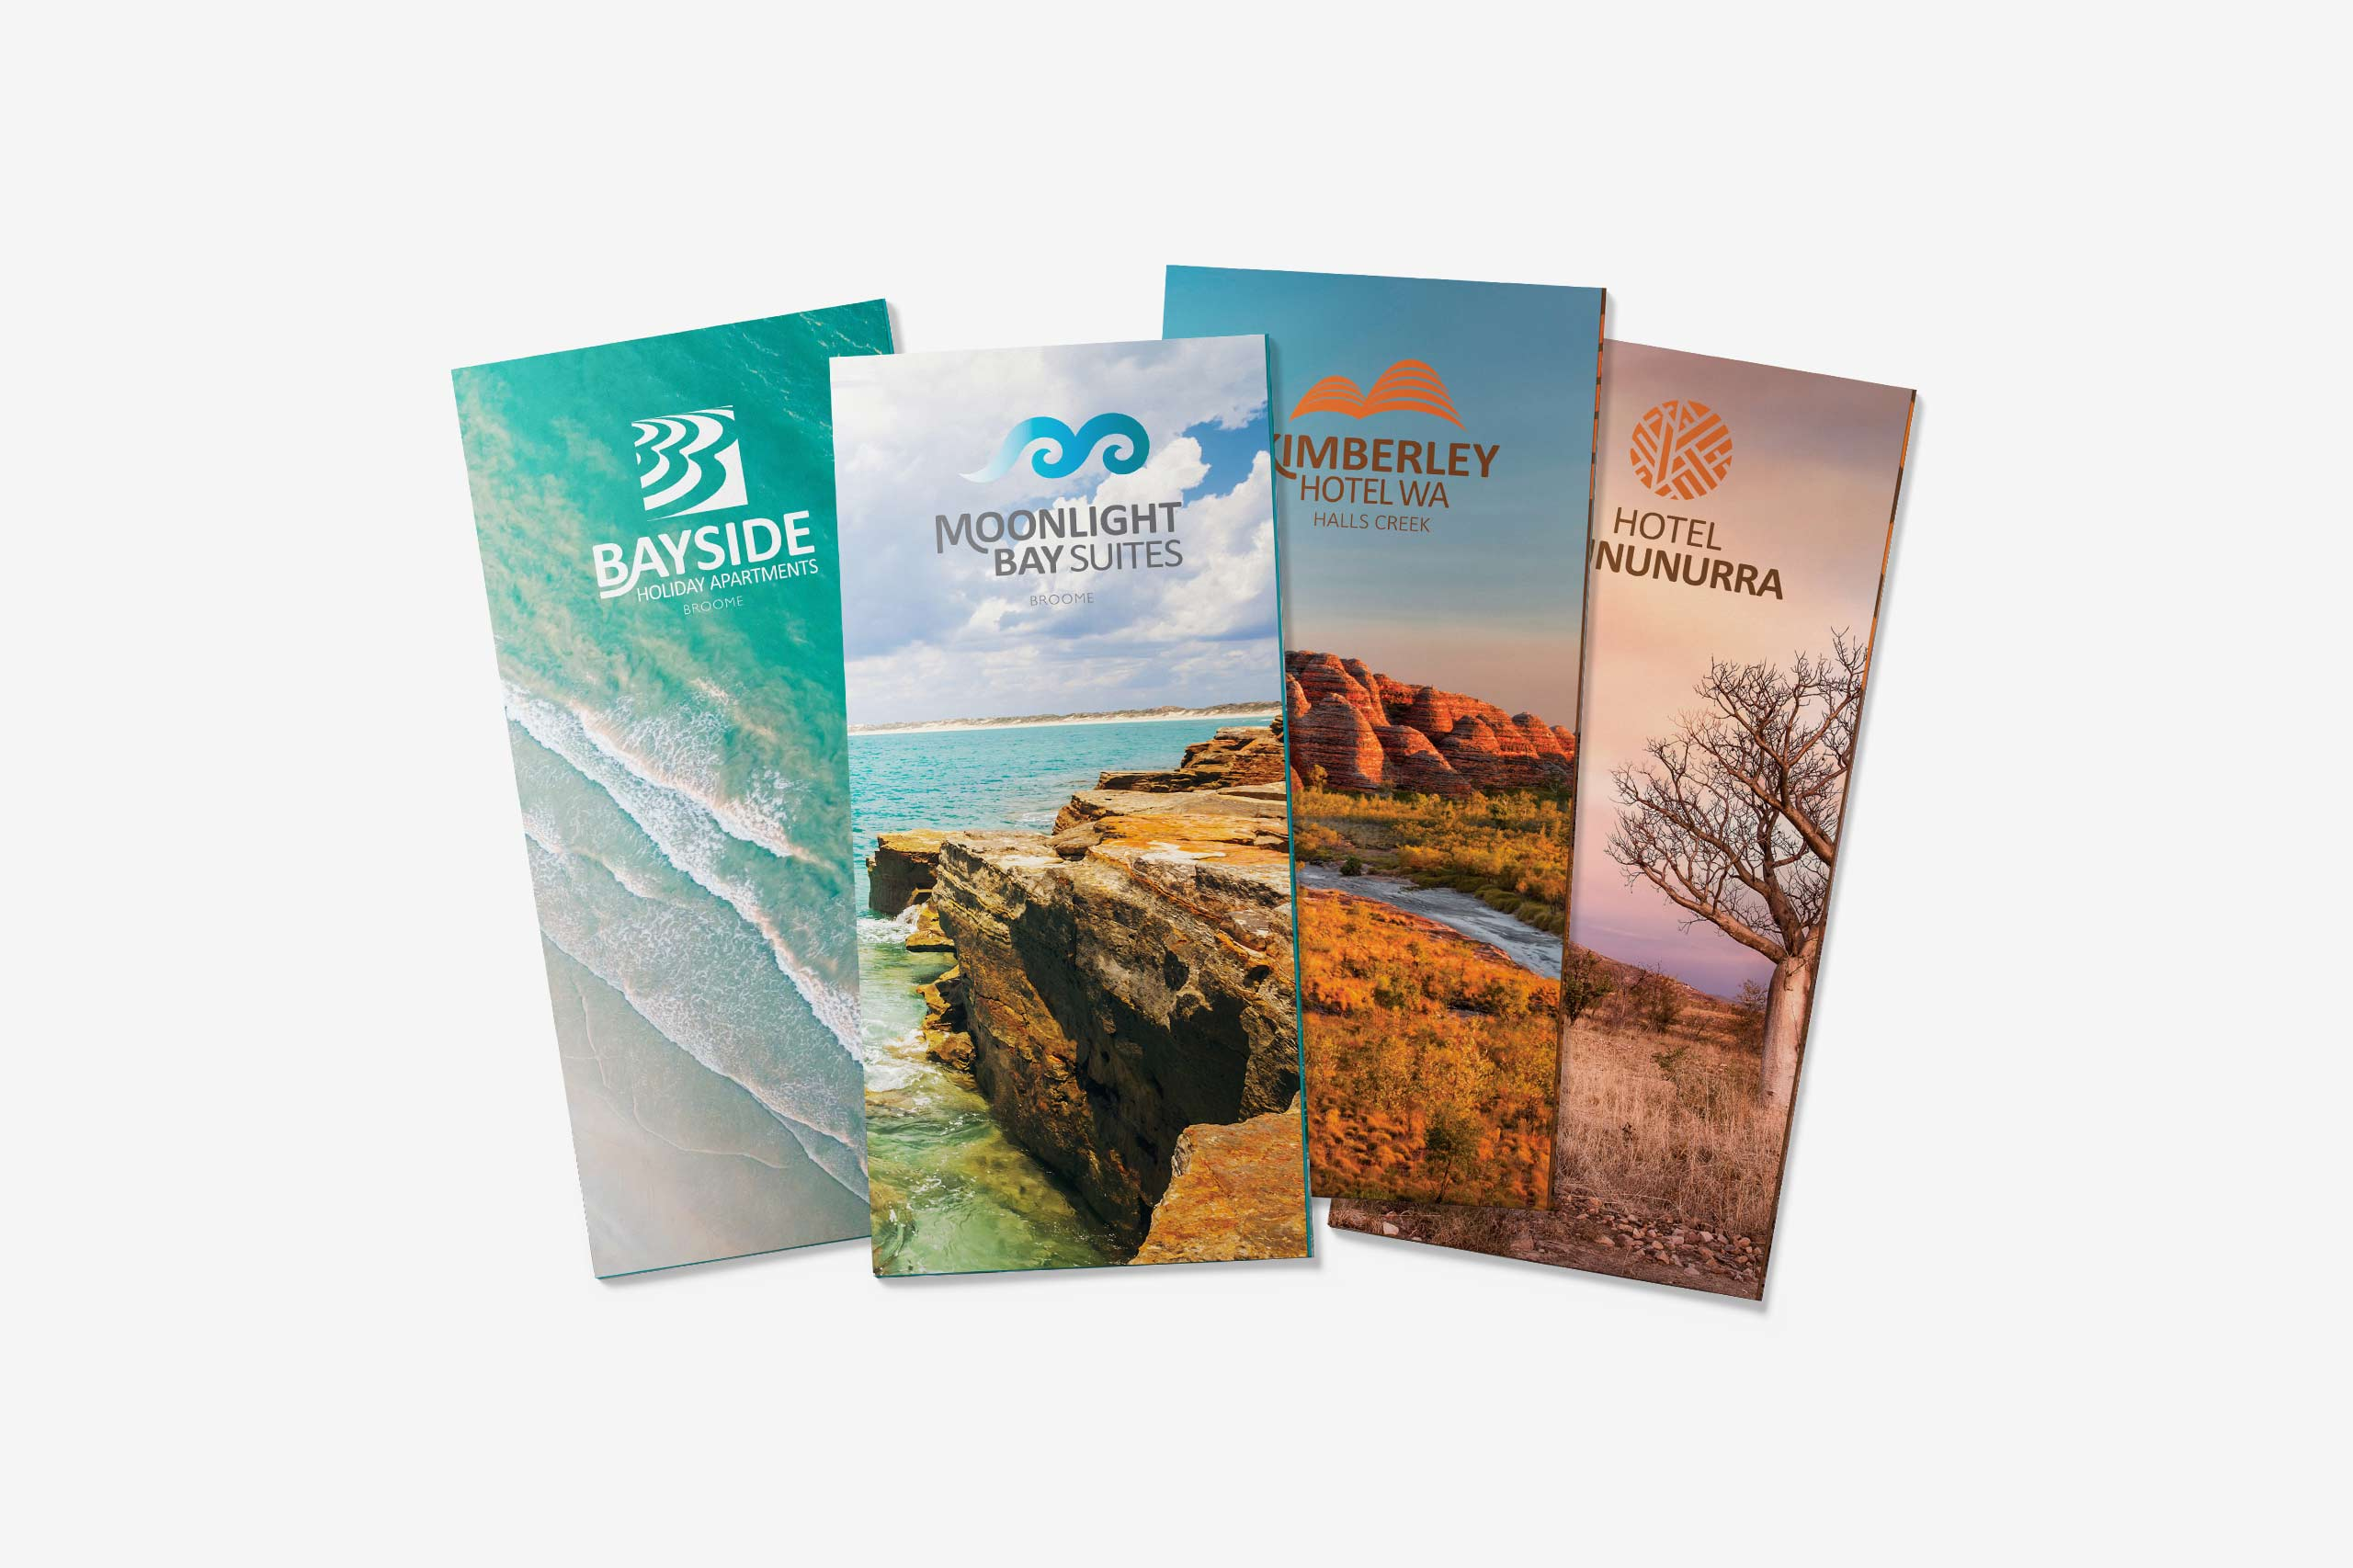 kimberley accommodation group brochure design Maker and co design